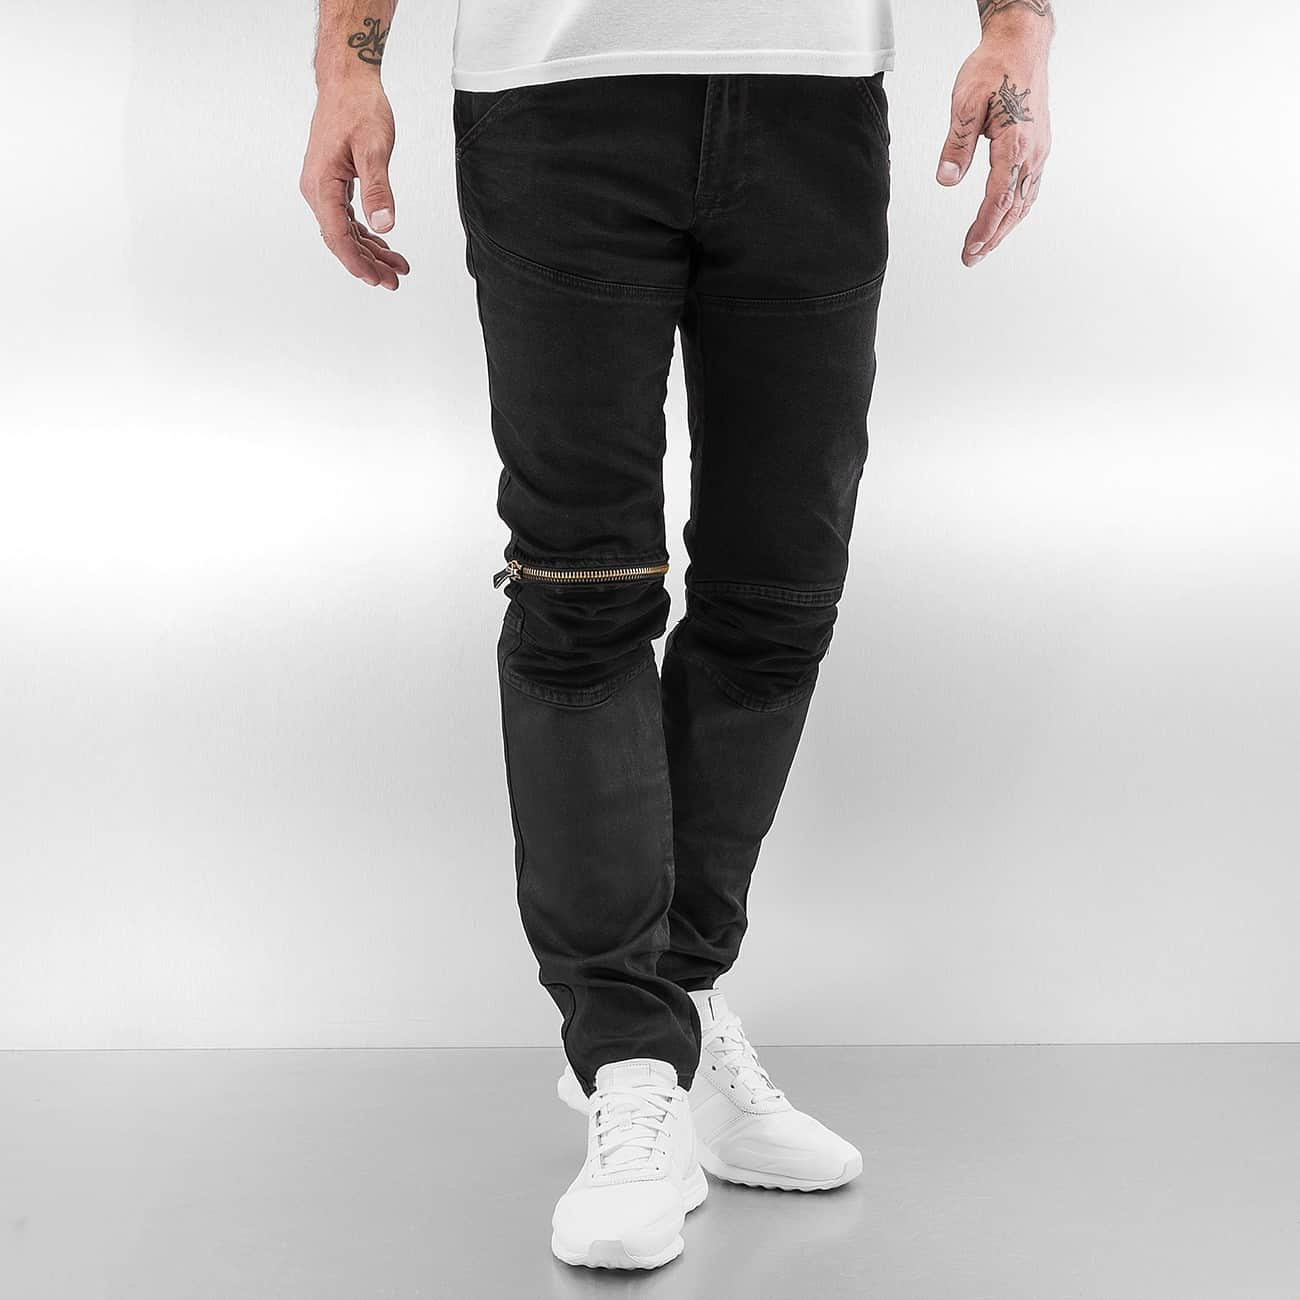 2Y / Slim Fit Jeans Avery in black - Streetscenter